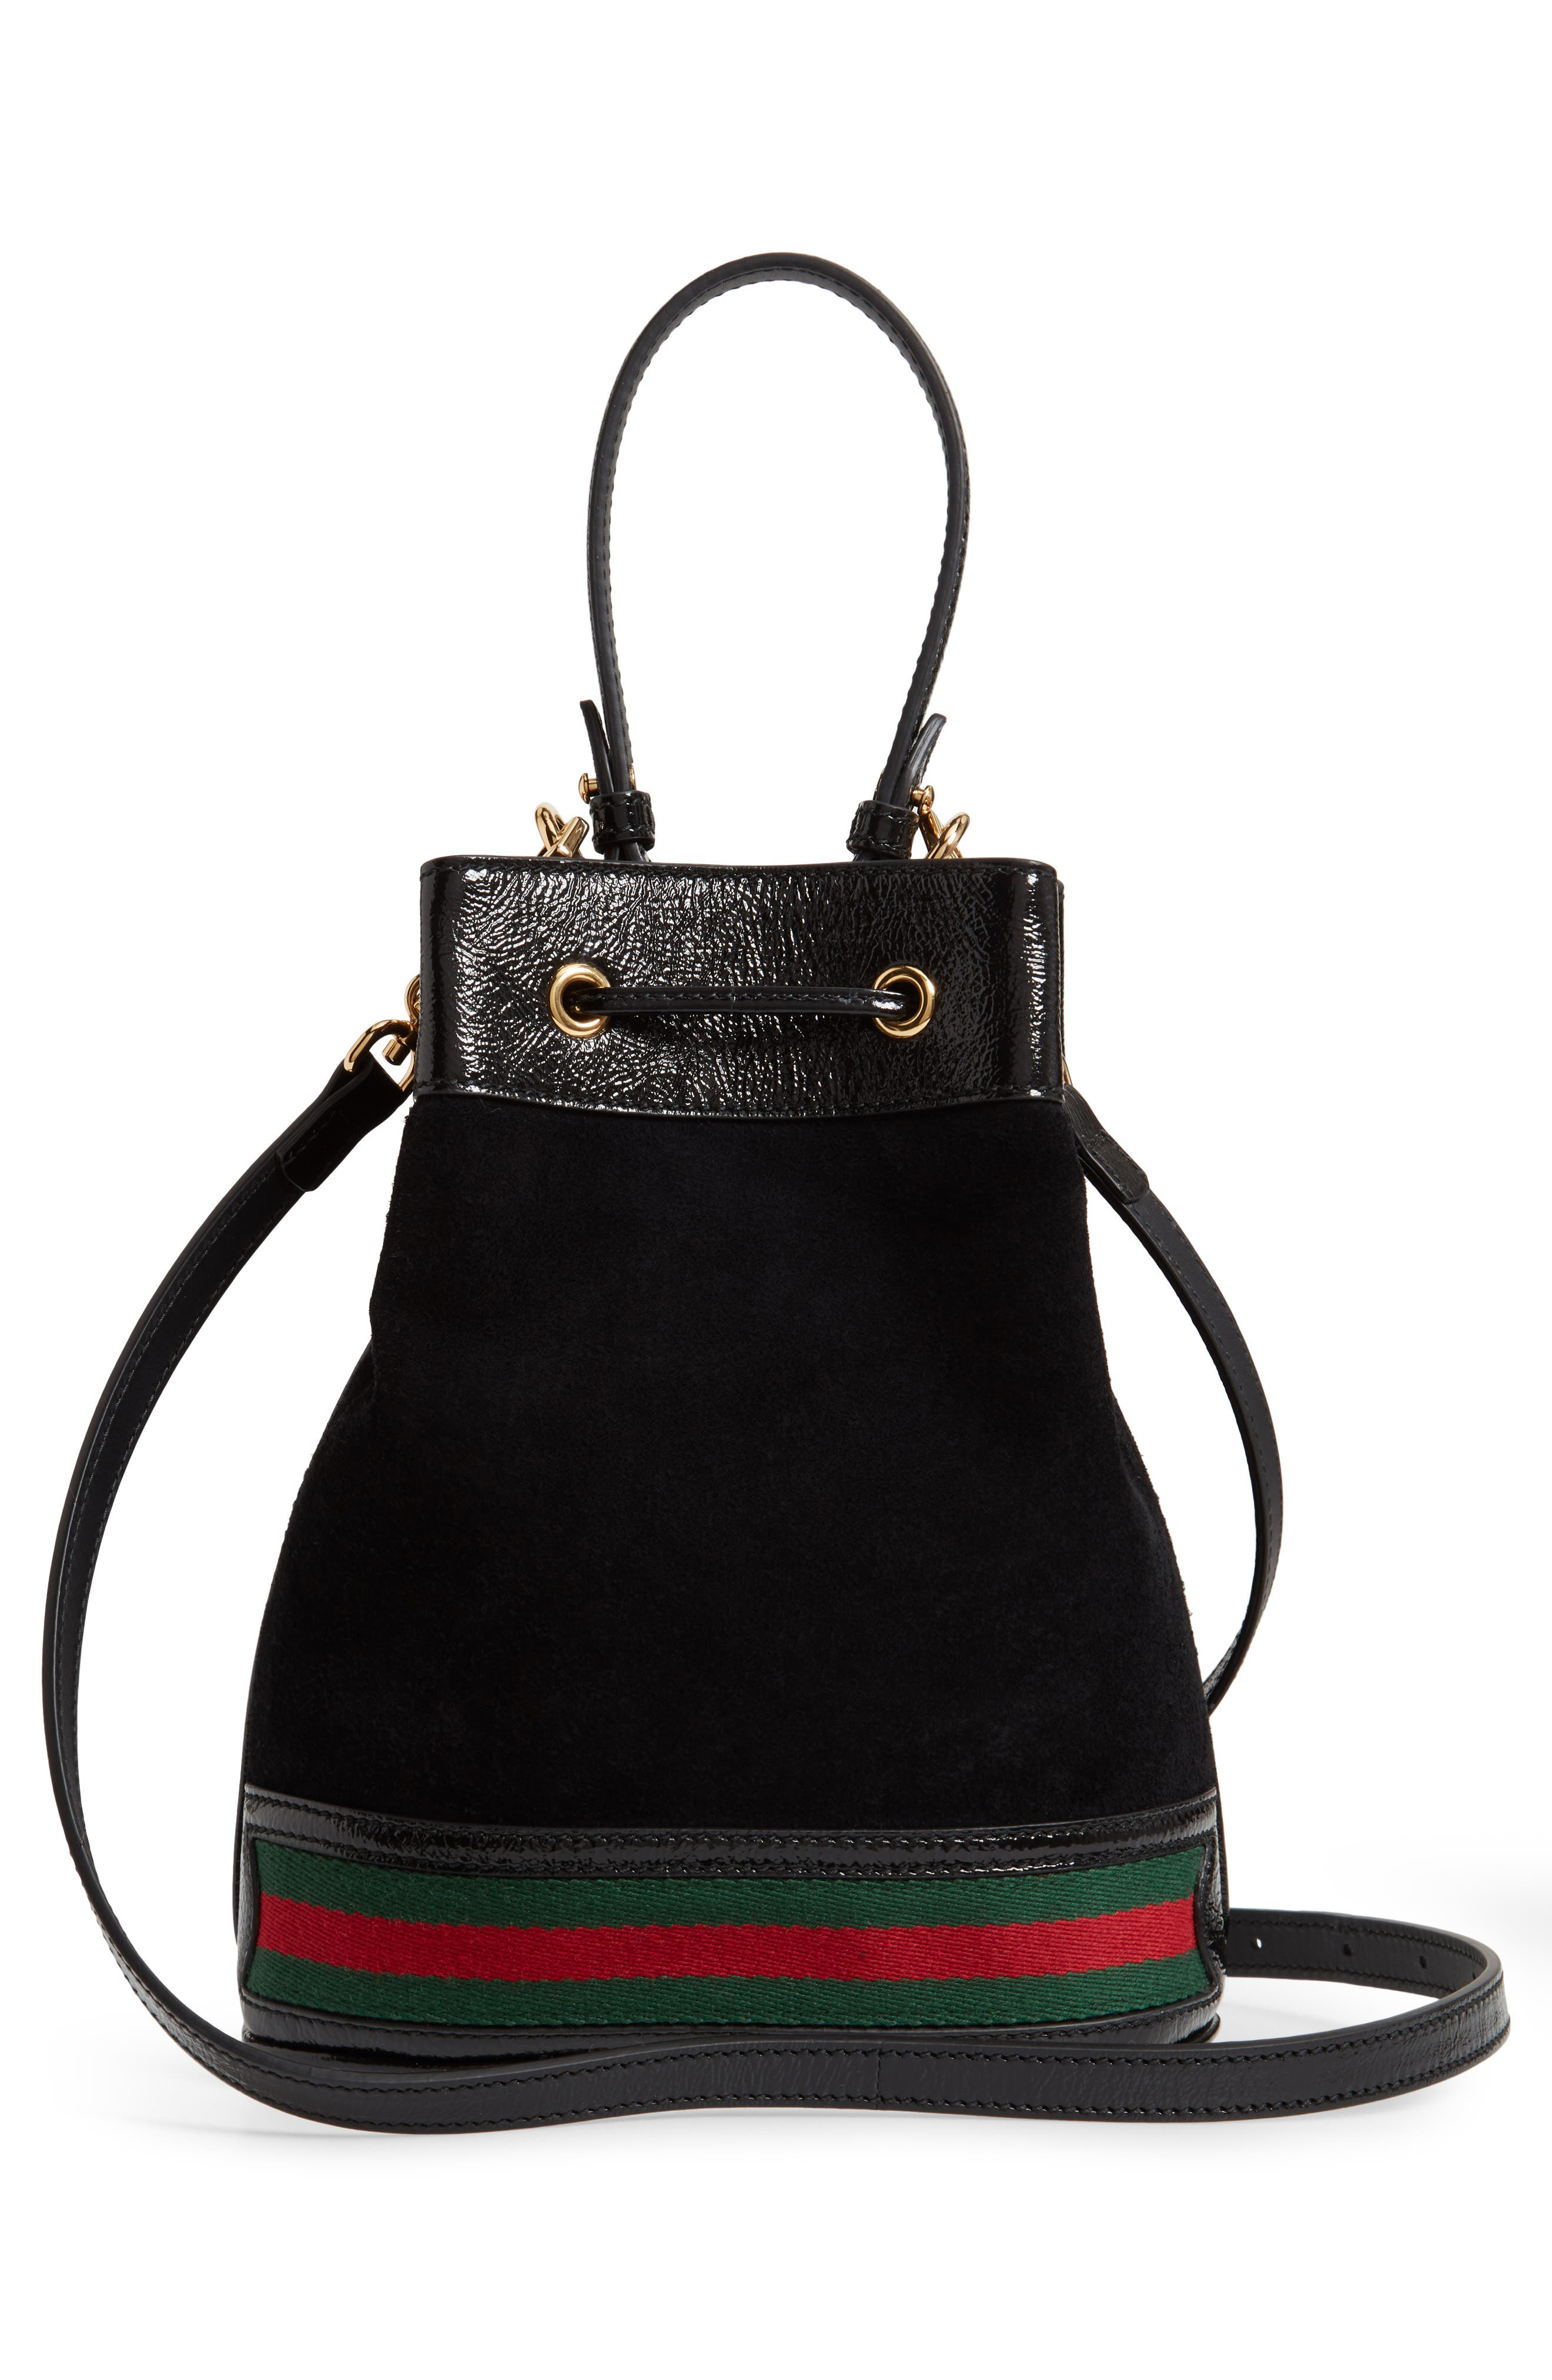 Small Ophidia Suede & Leather Bucket Bag,                             Alternate thumbnail 4, color,                             NERO/ VERT/ RED